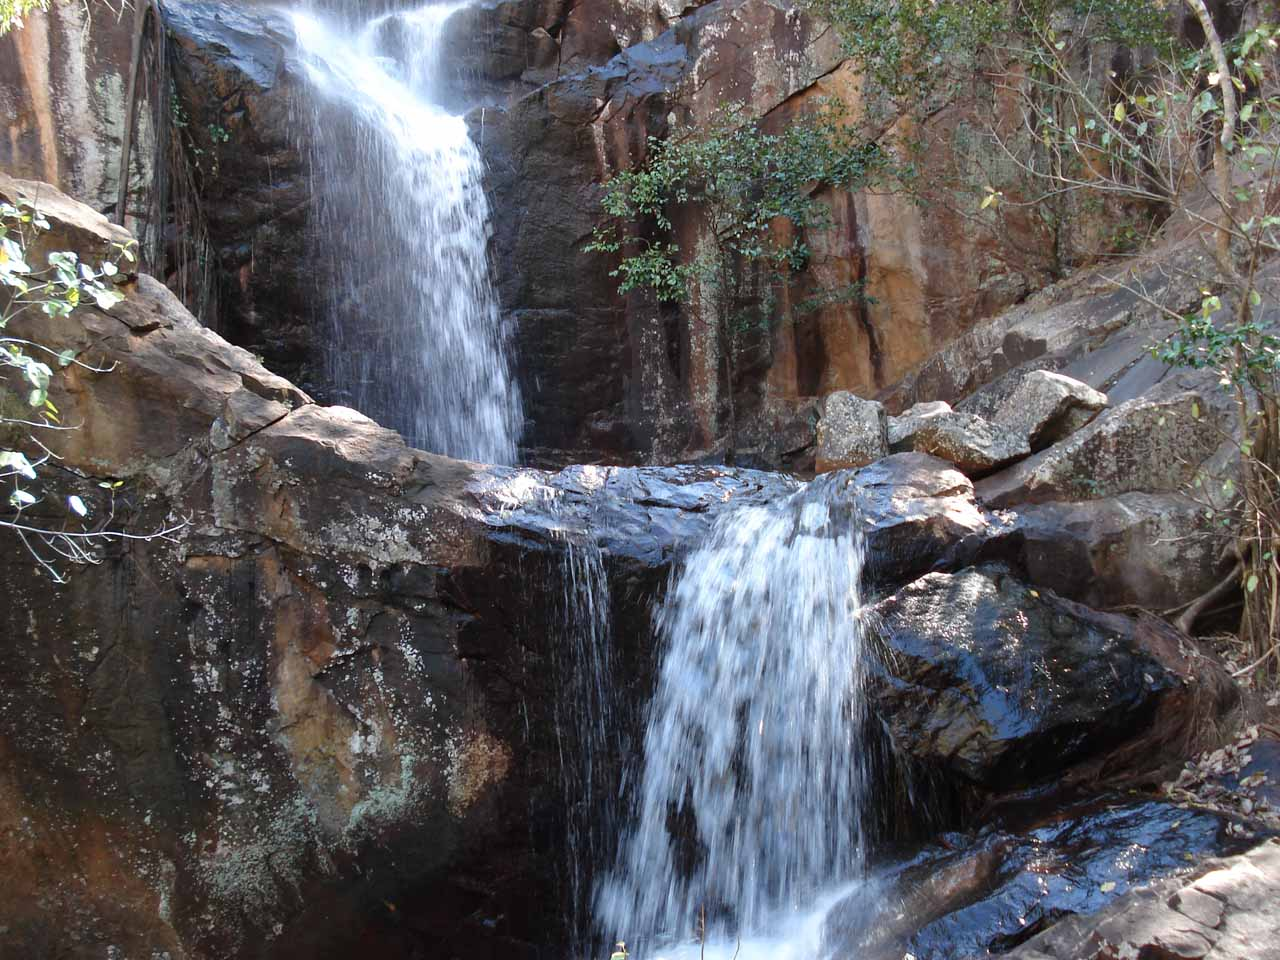 Partial view of Robin Falls